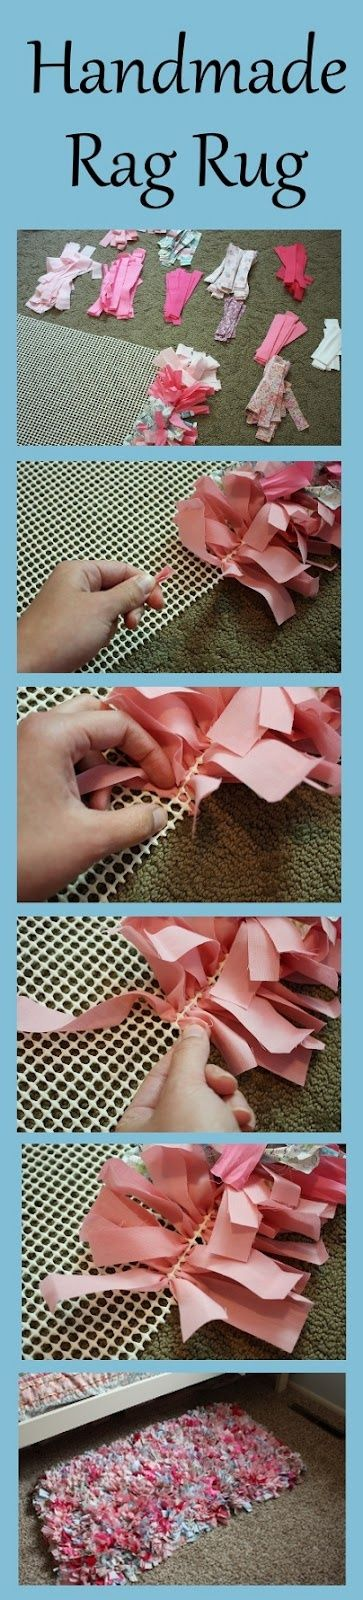 Easy+rag+rug+tutorial!+Perfect+use+for+scrap+fabric!